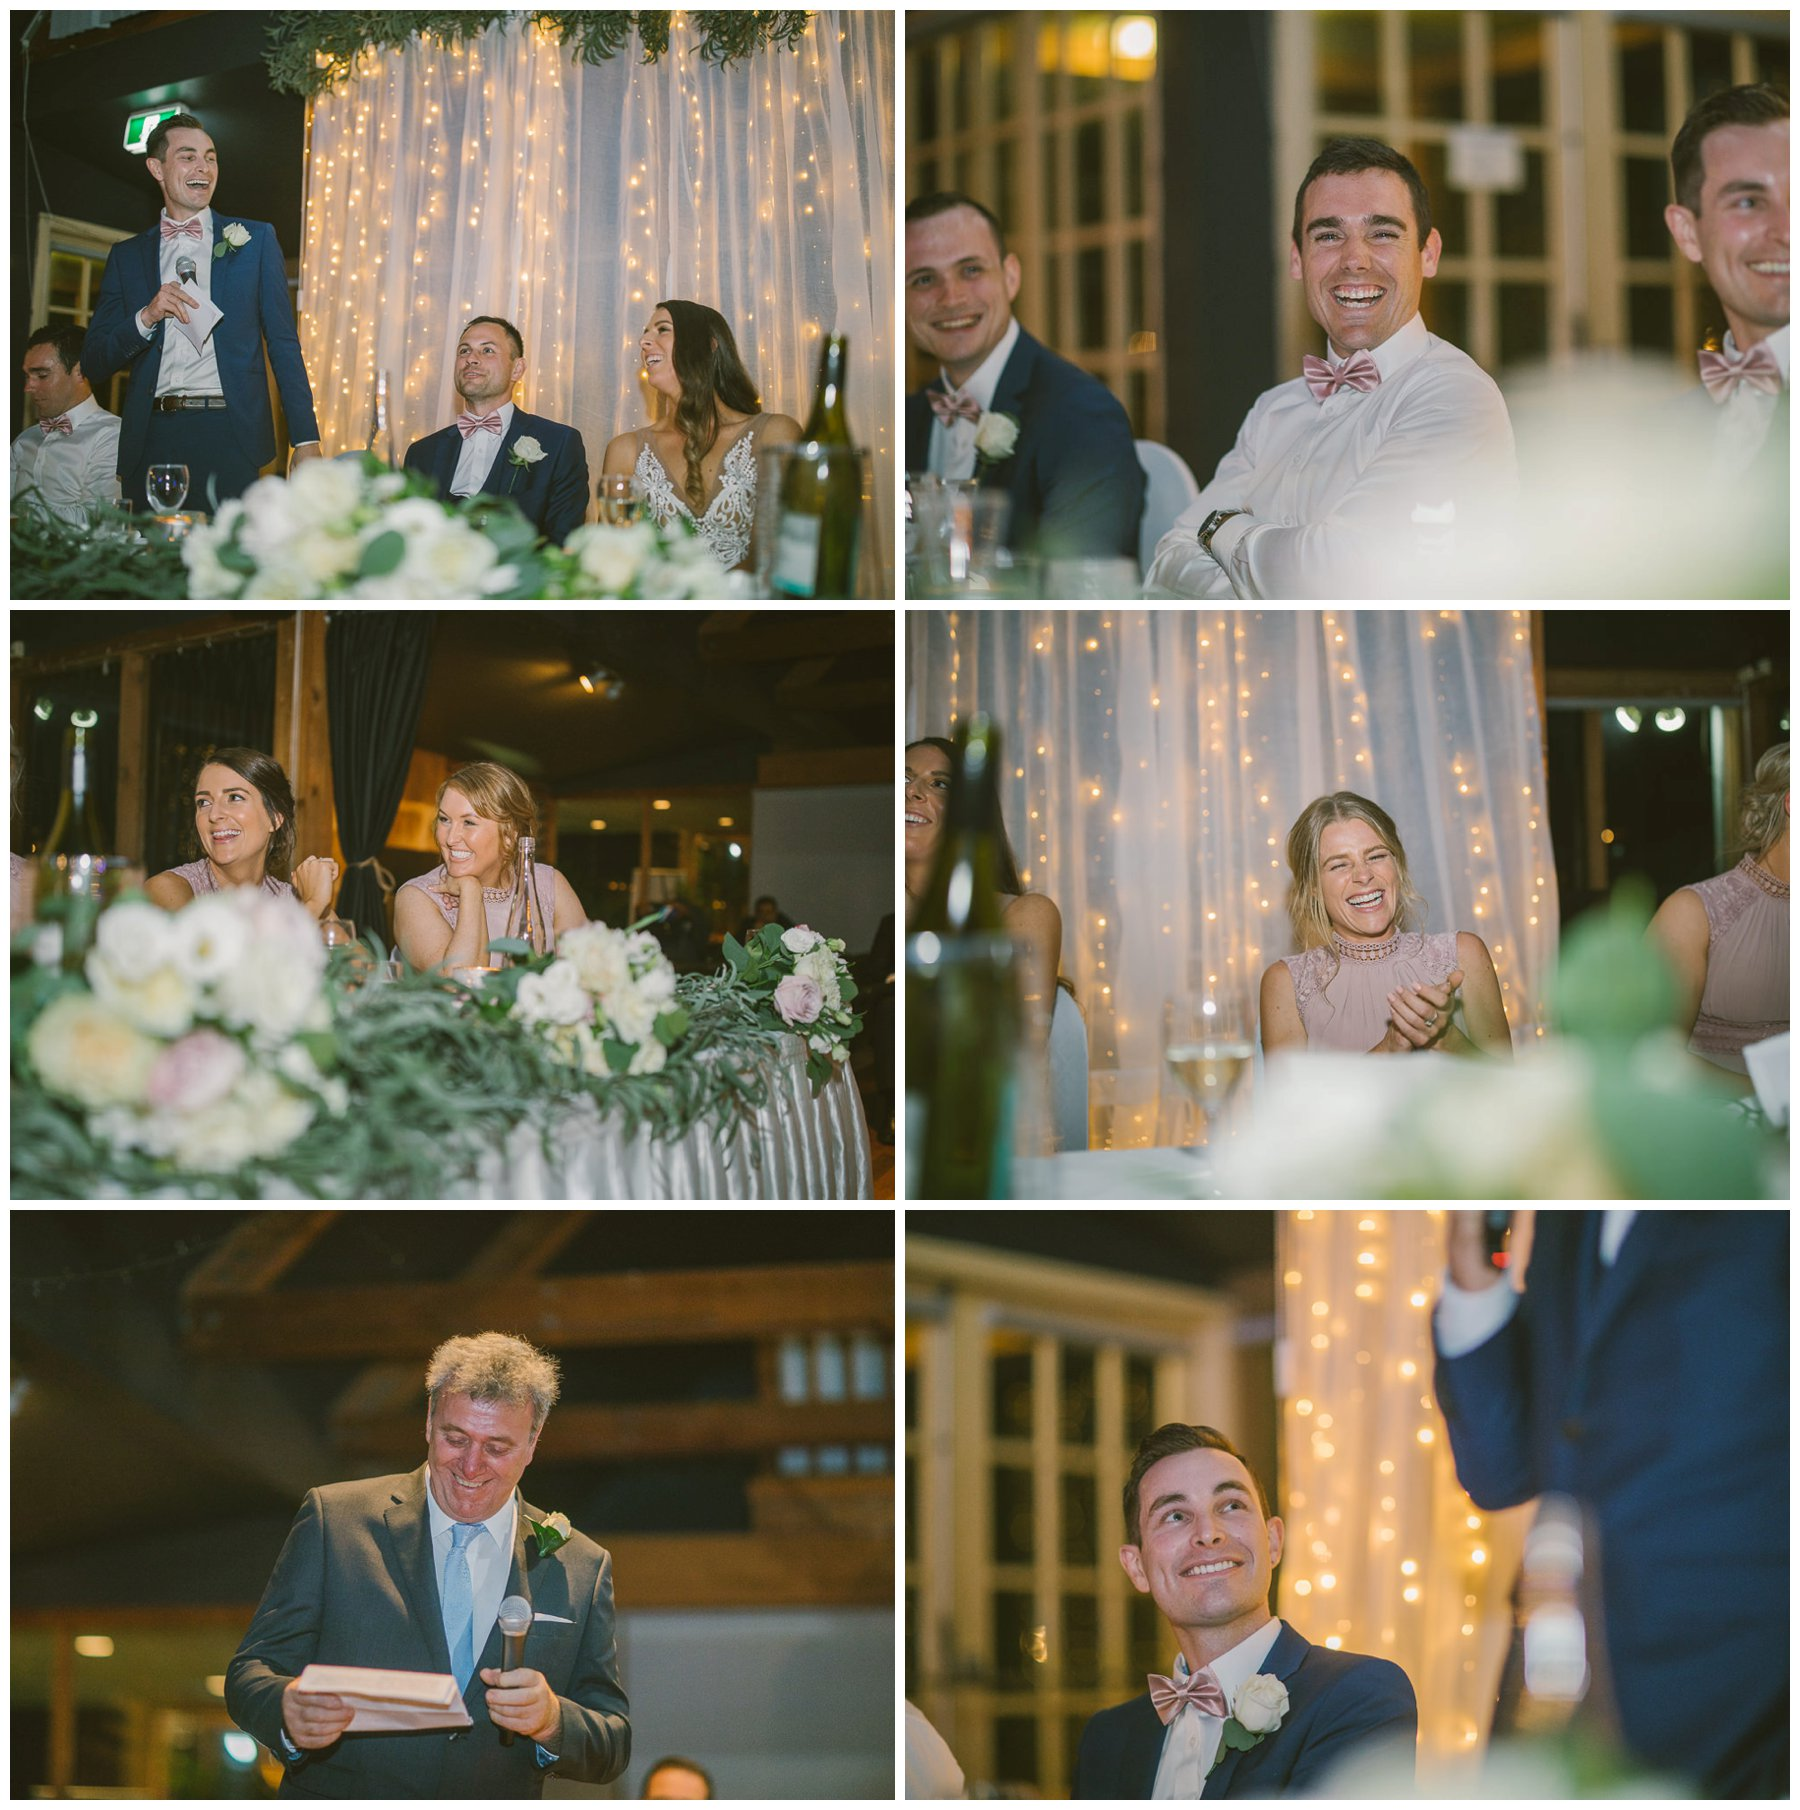 Patrick and Hollie, Coolangatta estate wedding, south coast wedding photographer, Southern Highlands wedding photographer, southern highlands photographer, reception, florist